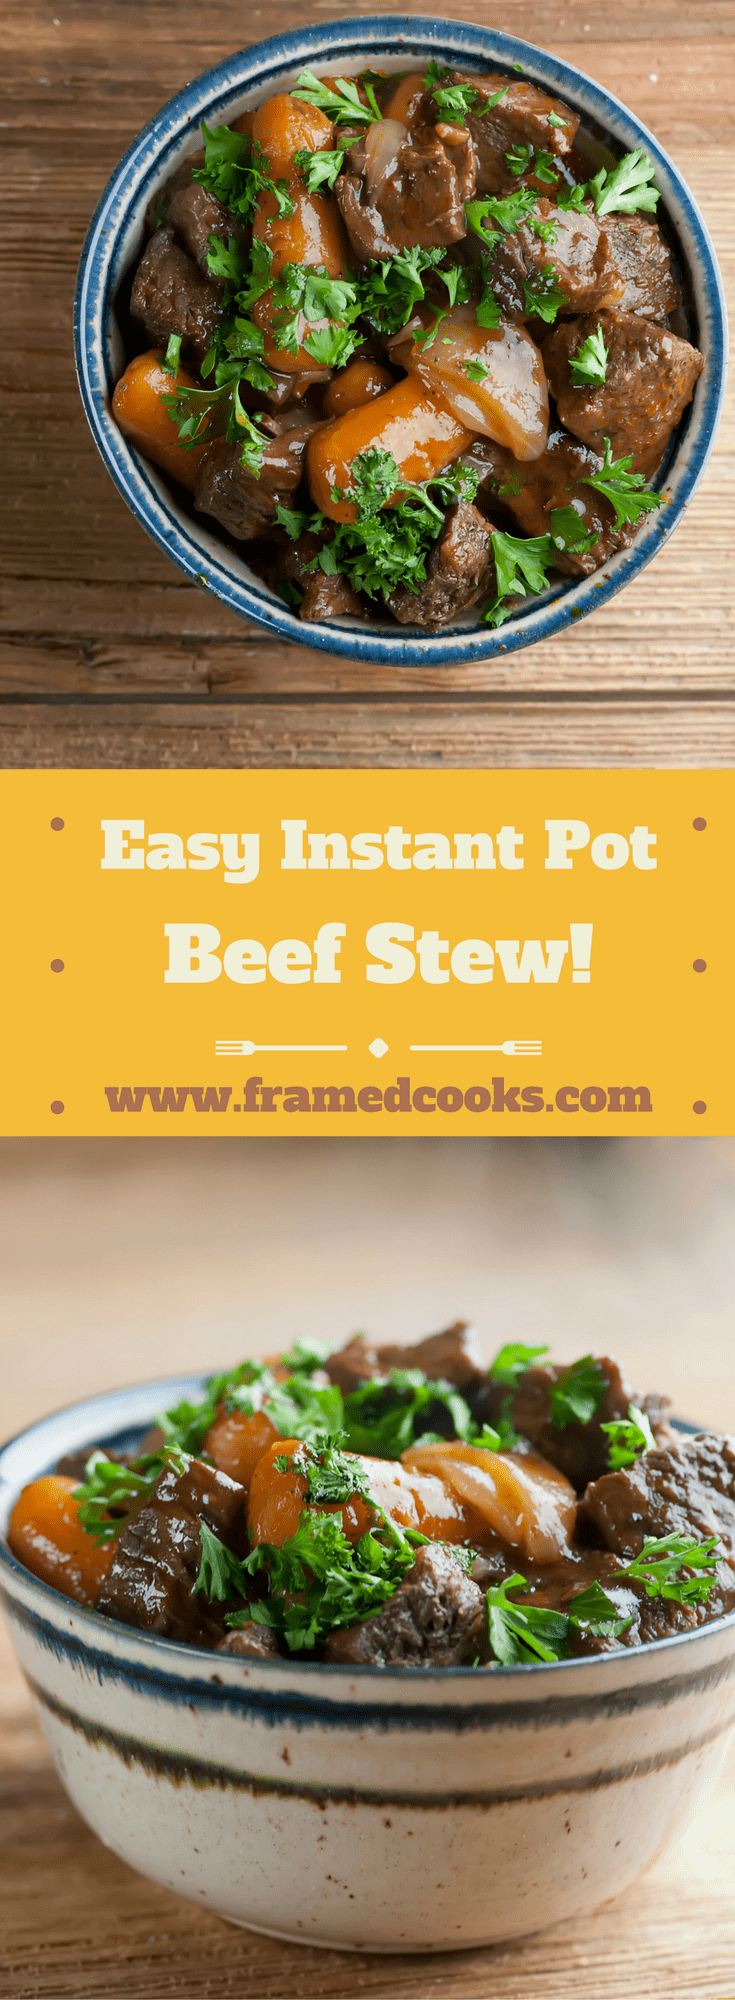 Whip up this classic supper in a jiffy with this recipe for easy Instant Pot Beef Stew.  The rich hearty flavor that everyone loves in pressure cooker form.